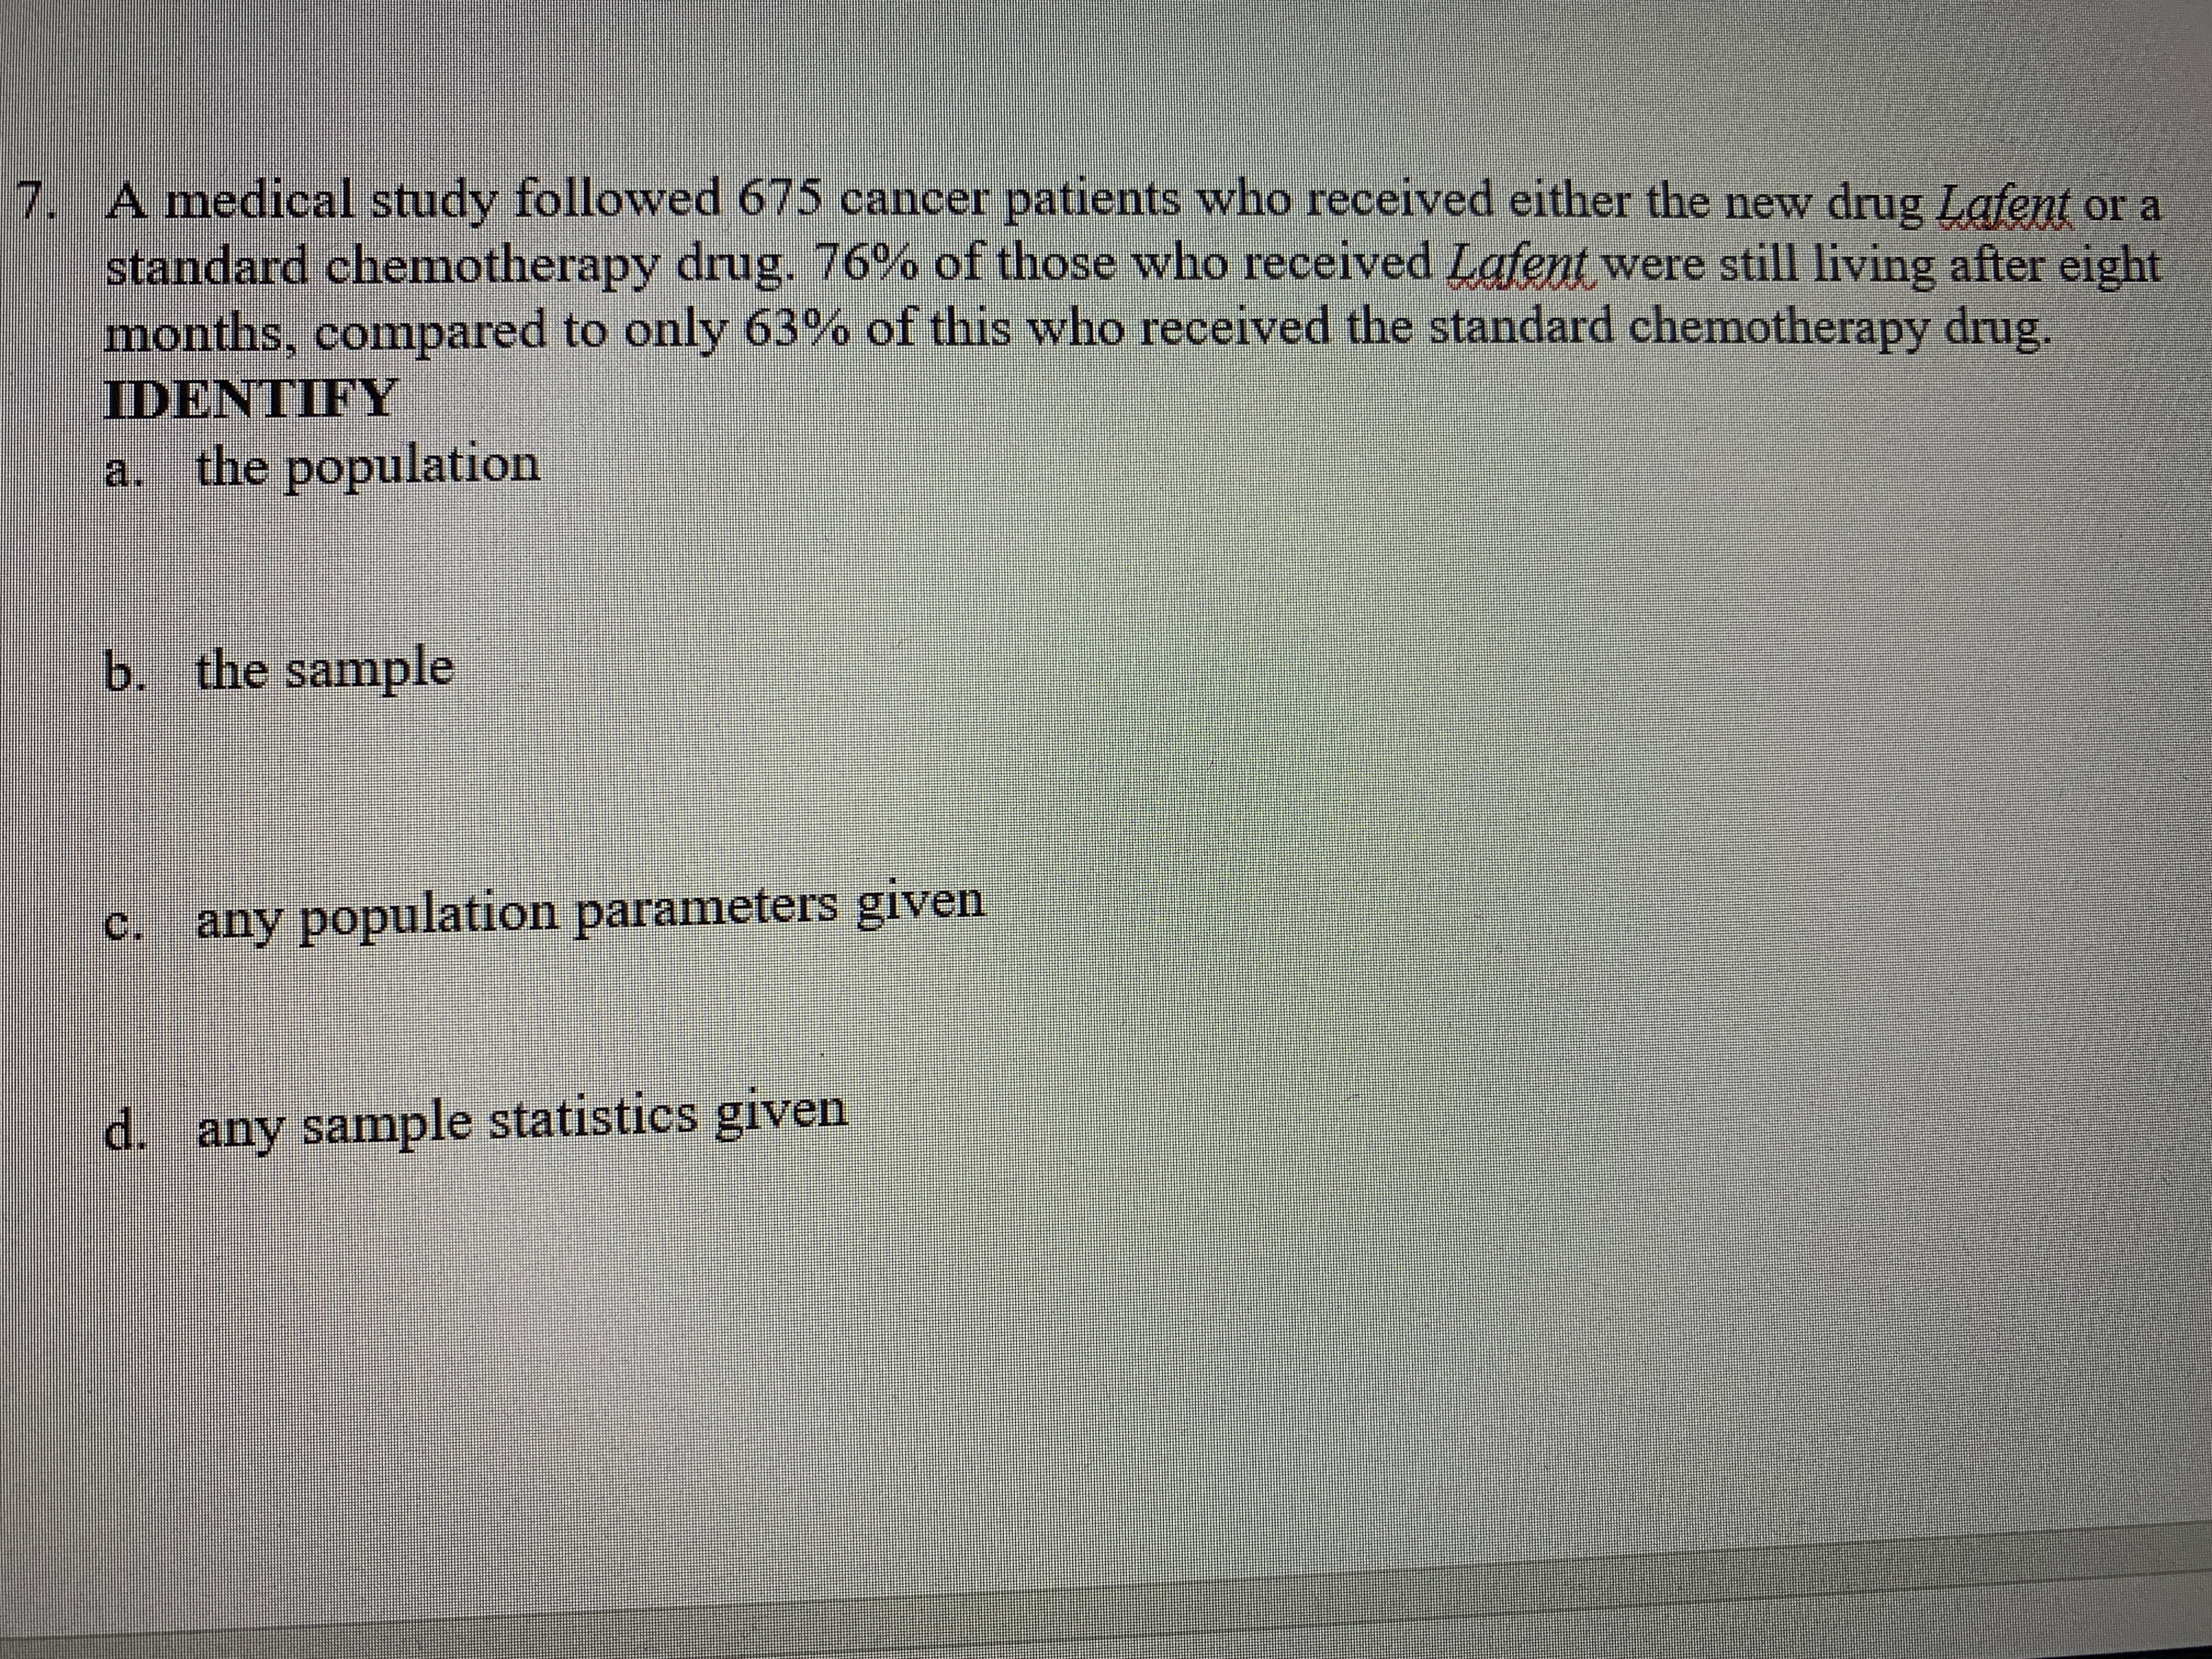 7.A medical study followed 675 cancer patients who received either the new drug Lafent or a standard chemotherapy drug. 76% of those who received Lafent were still living after eight months, compared to only 63% of this who received the standard chemotherapy drug. DENTIFY a. the population b. the sample c. any population parameters given d. any sample statistics given